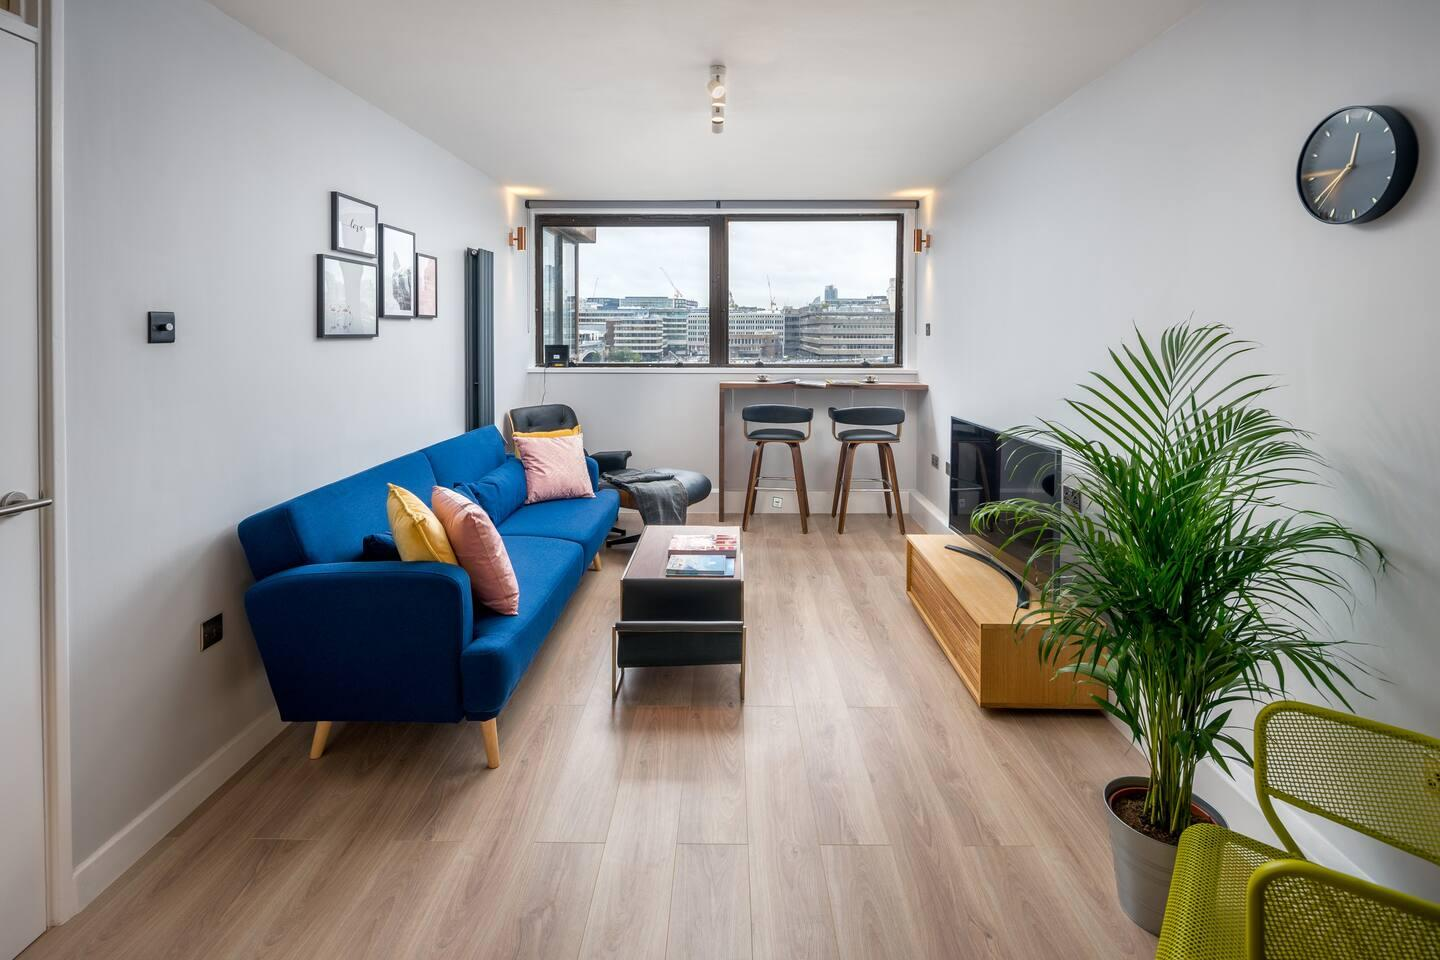 Property Image 2 - Energetic 2BR apartment in Bankside with Panoramic riverview